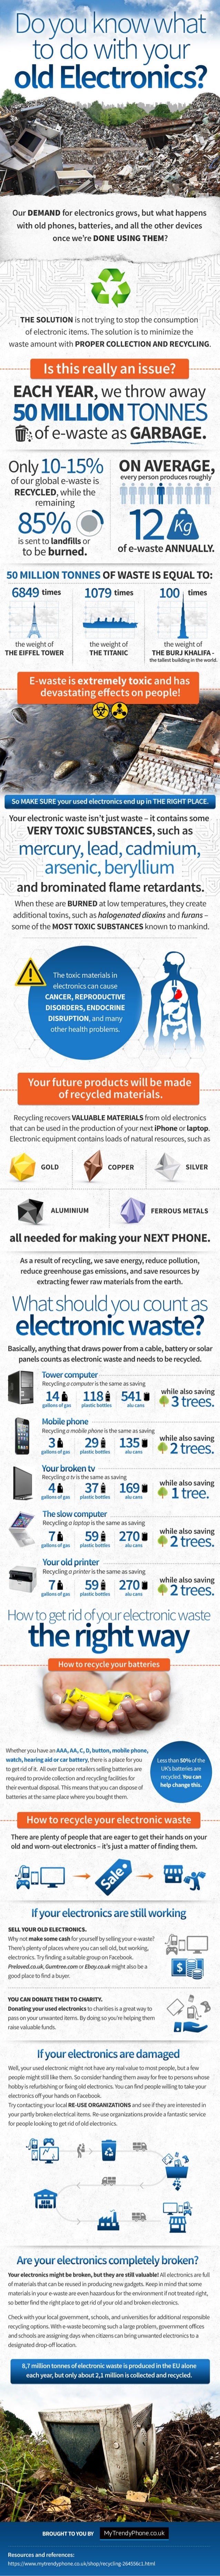 Do you know what to do with your electronics?